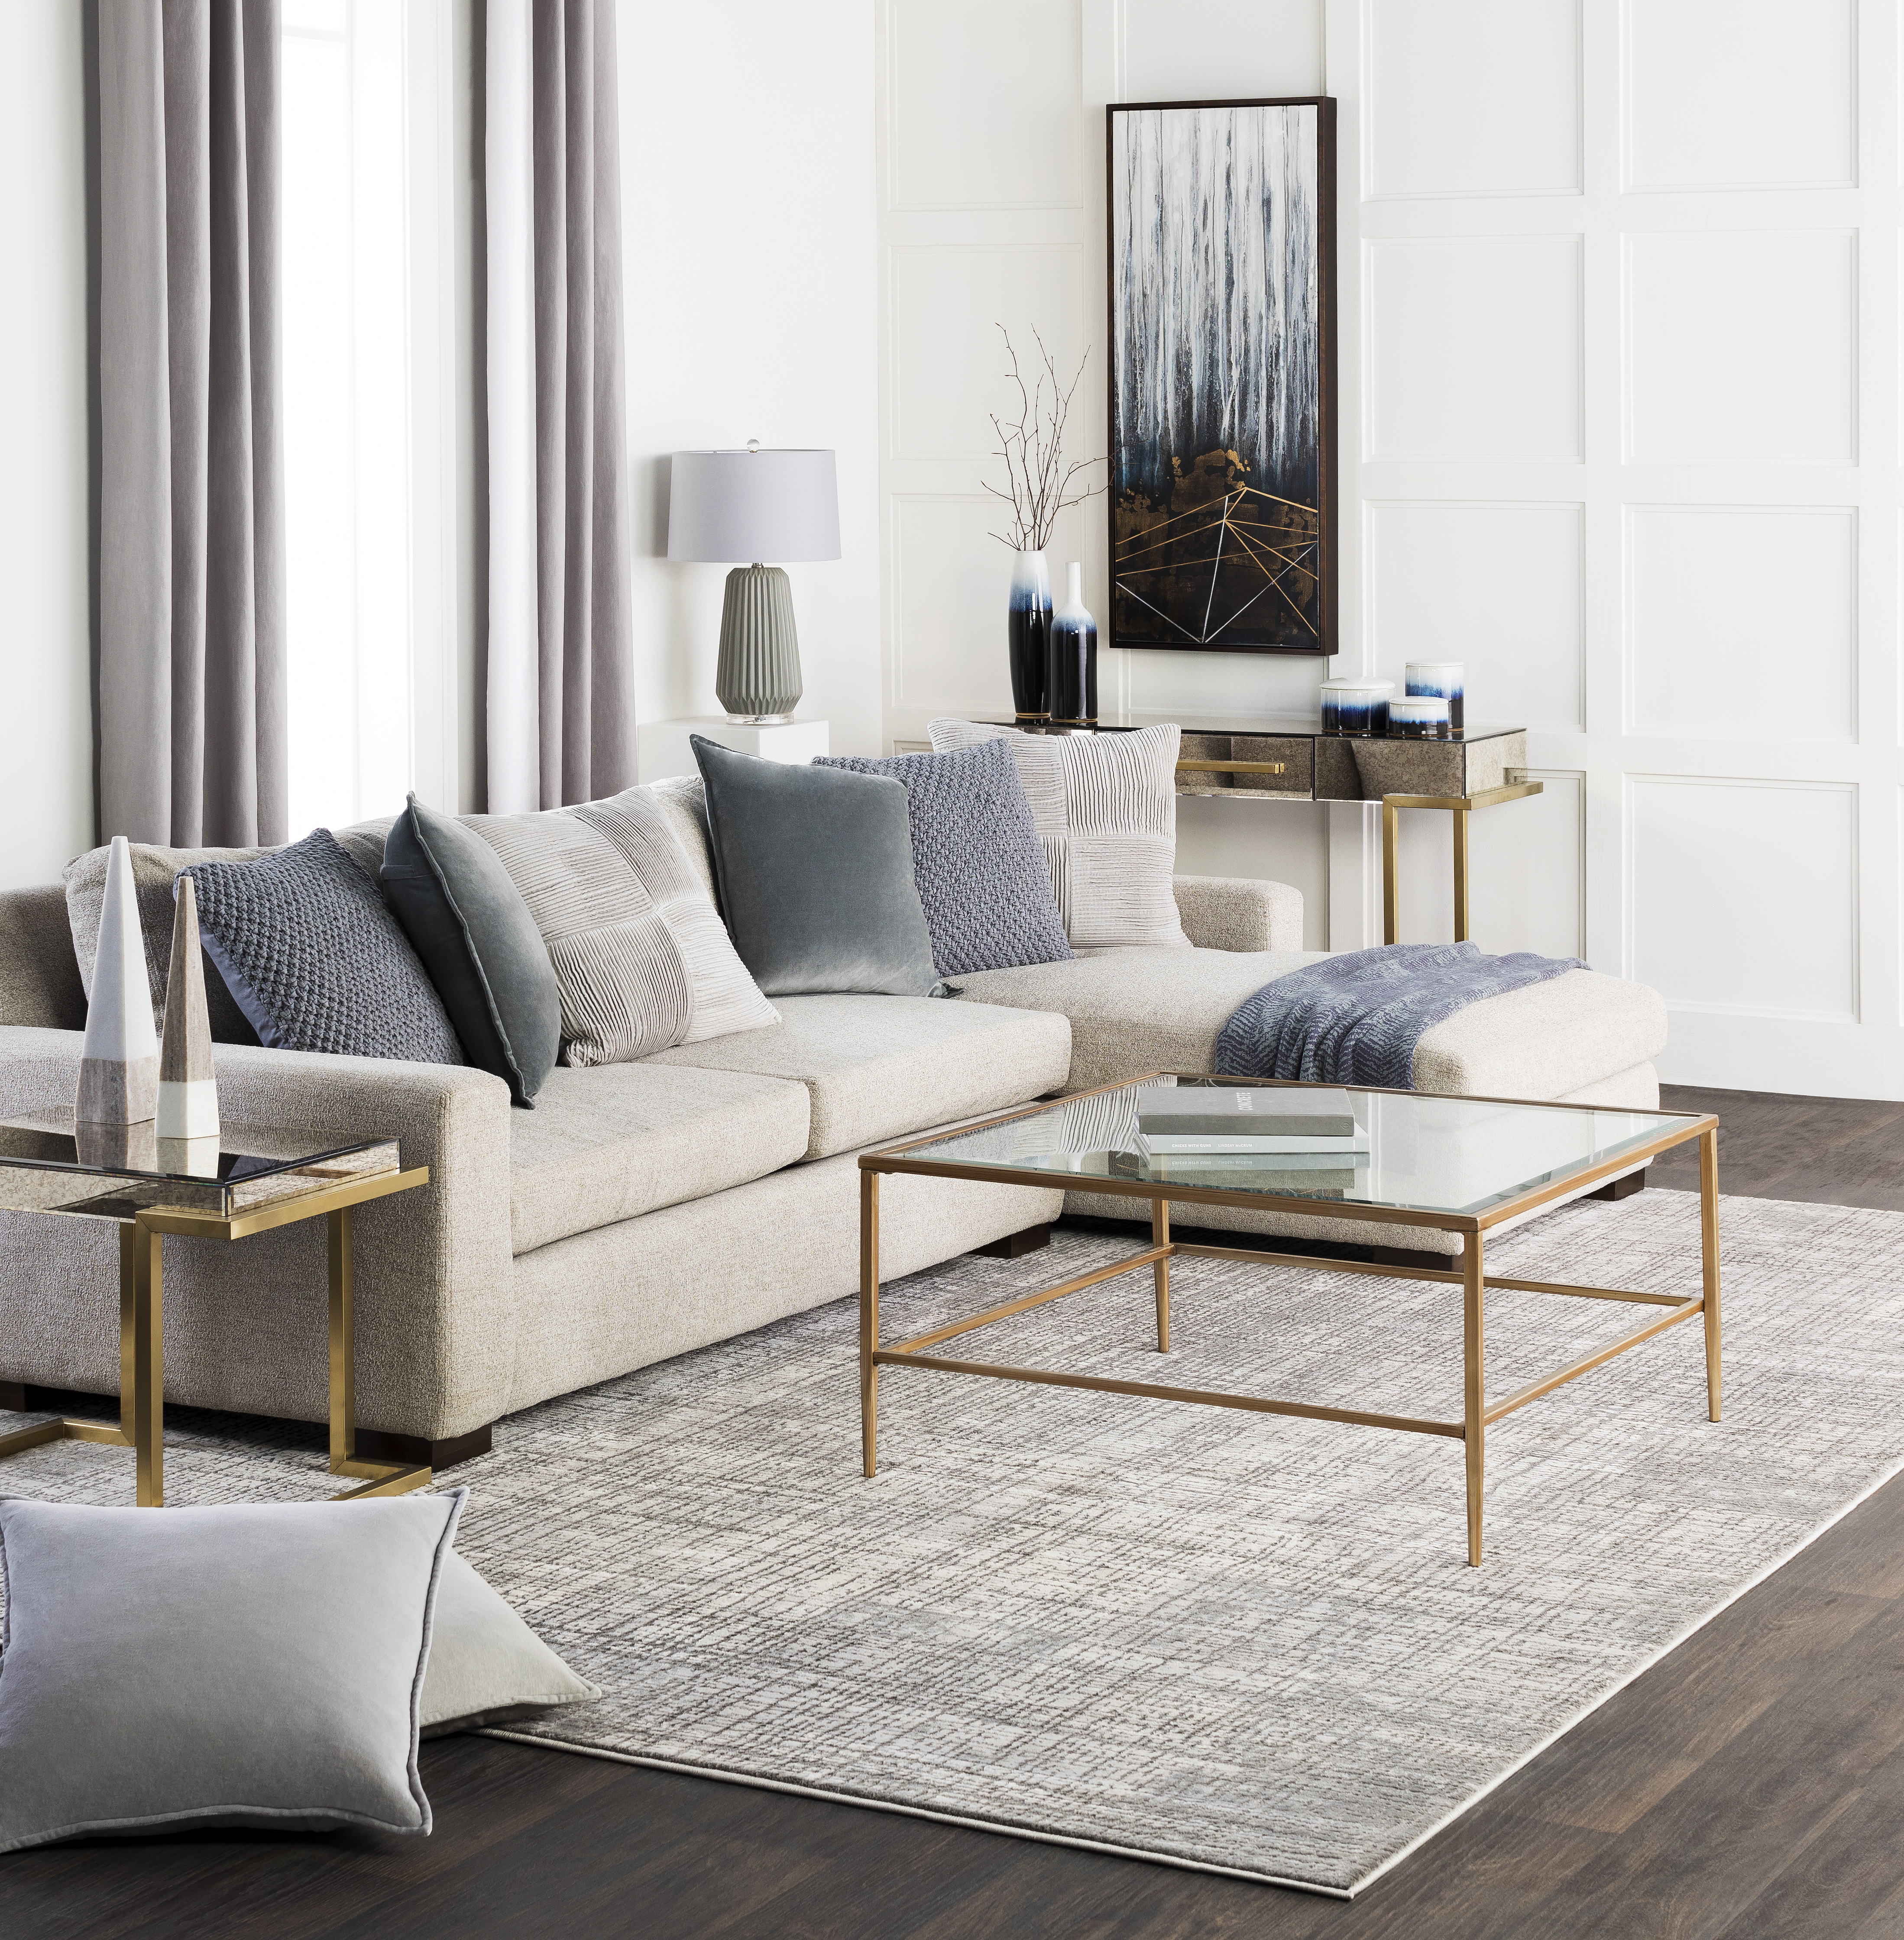 Surya rug in a living room